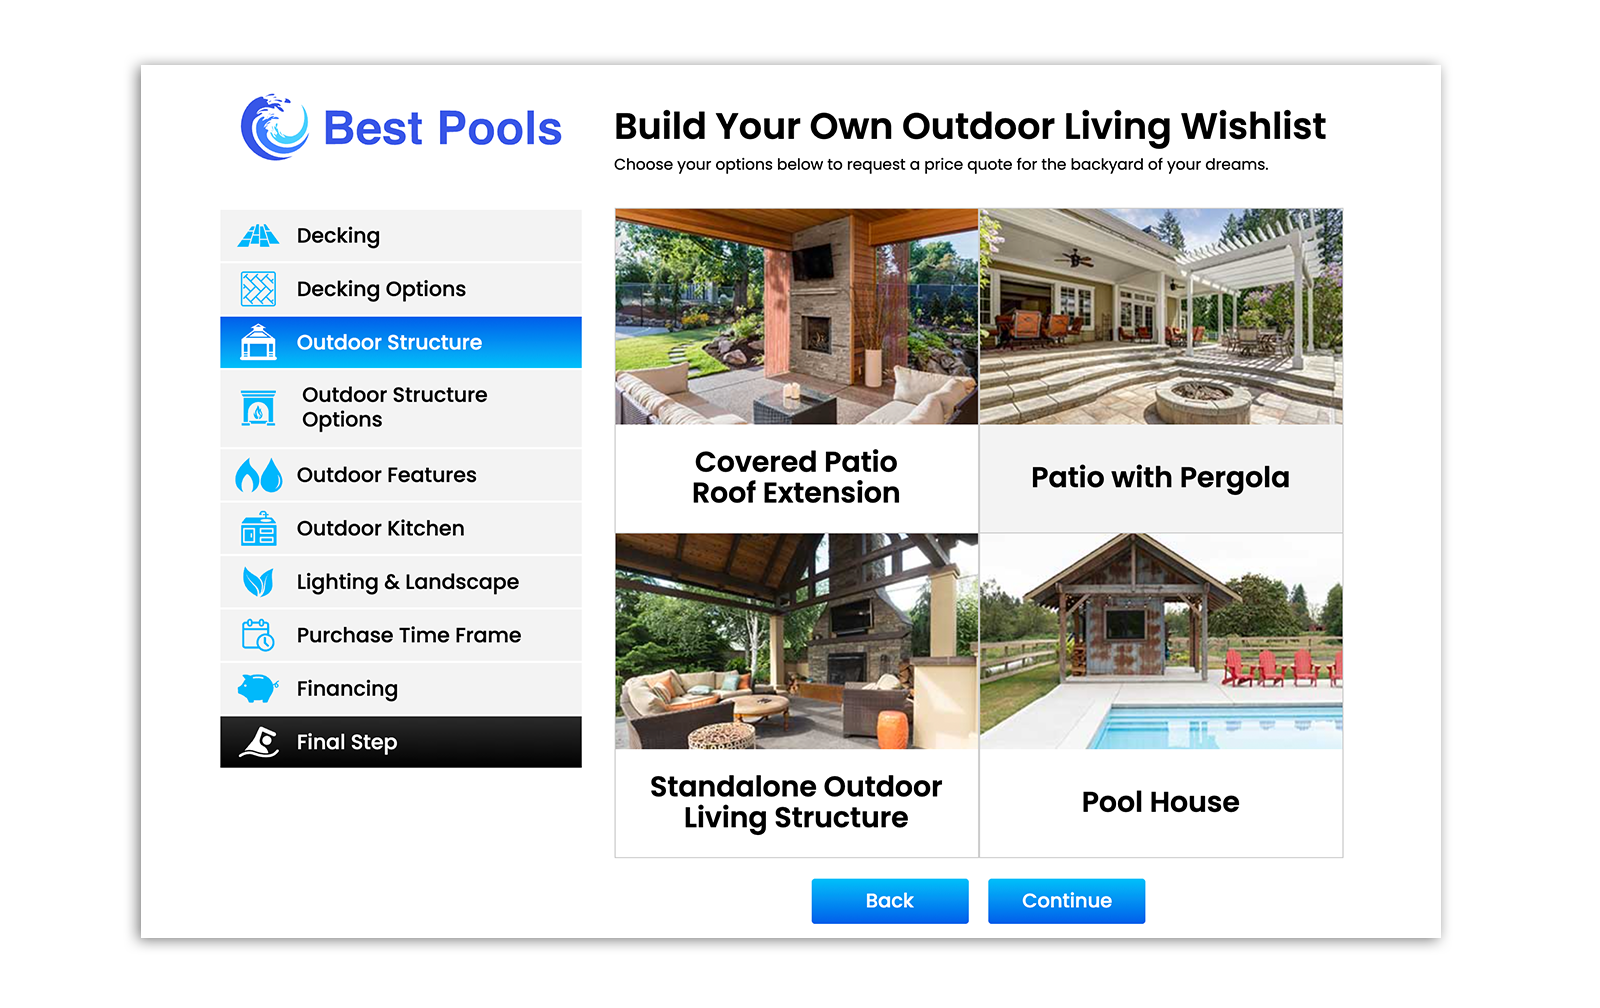 Build Your Own Outdoor Living Wishlist